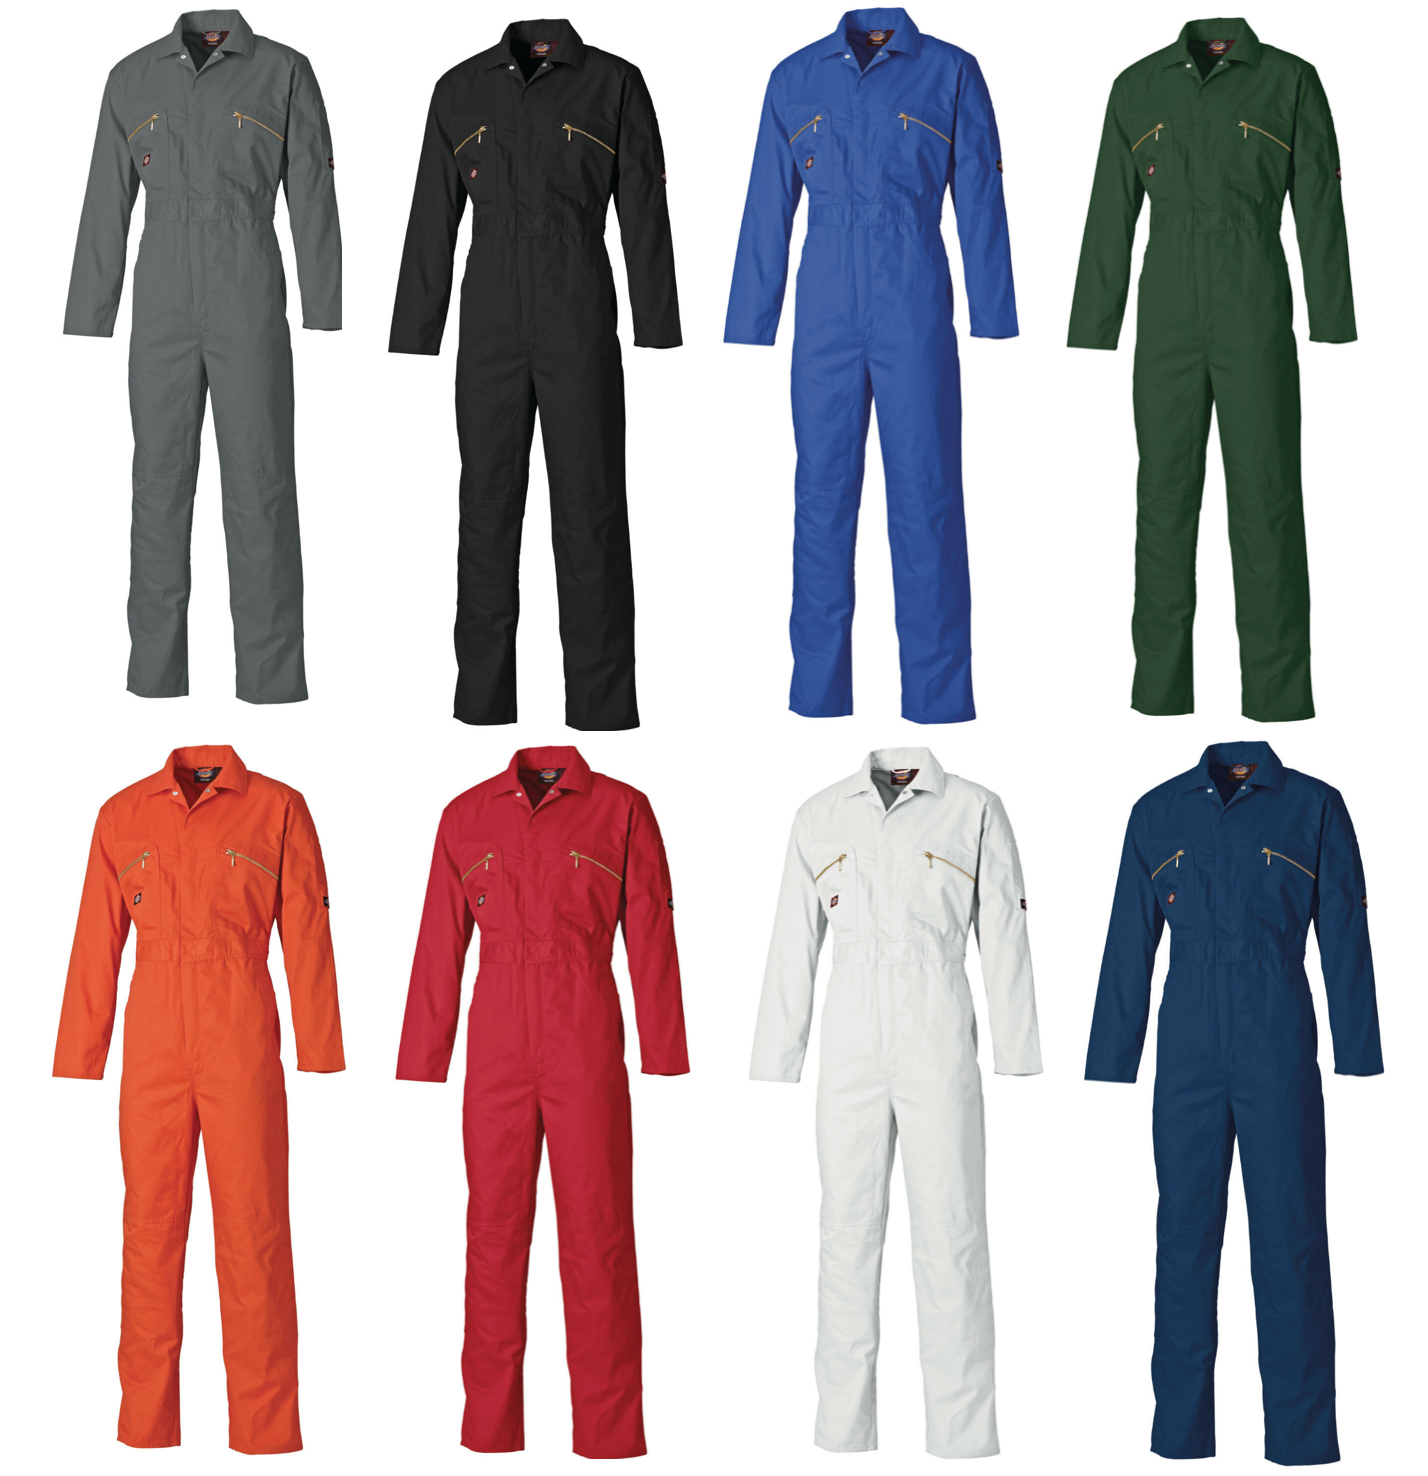 Lincoln Green 38R Dickies WD4839 Redhawk Overall with Zip Front